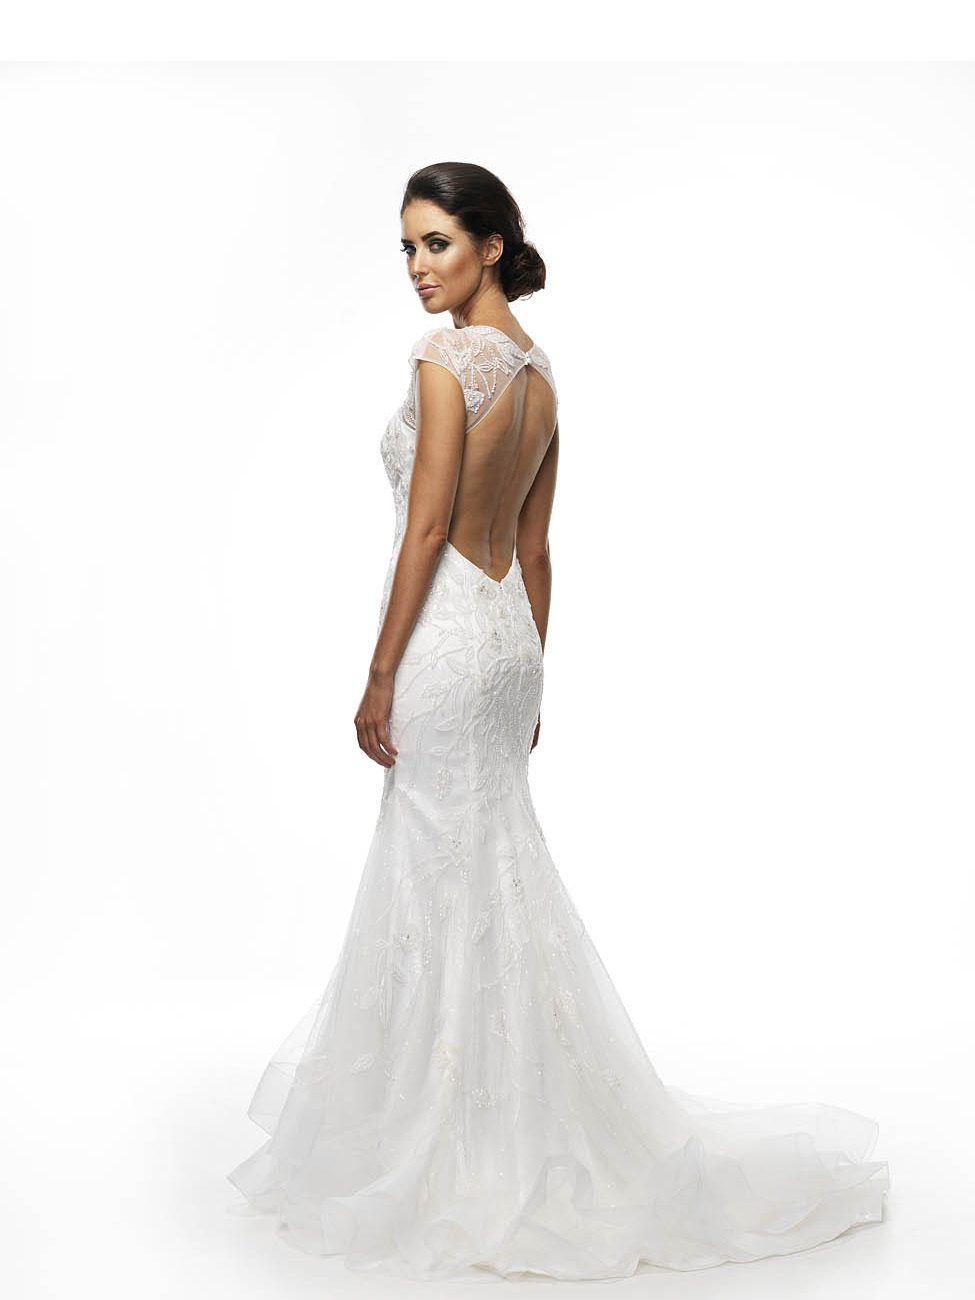 Buy wedding dresses in melbourne wedding dress shop for Wedding dresses under 3000 melbourne